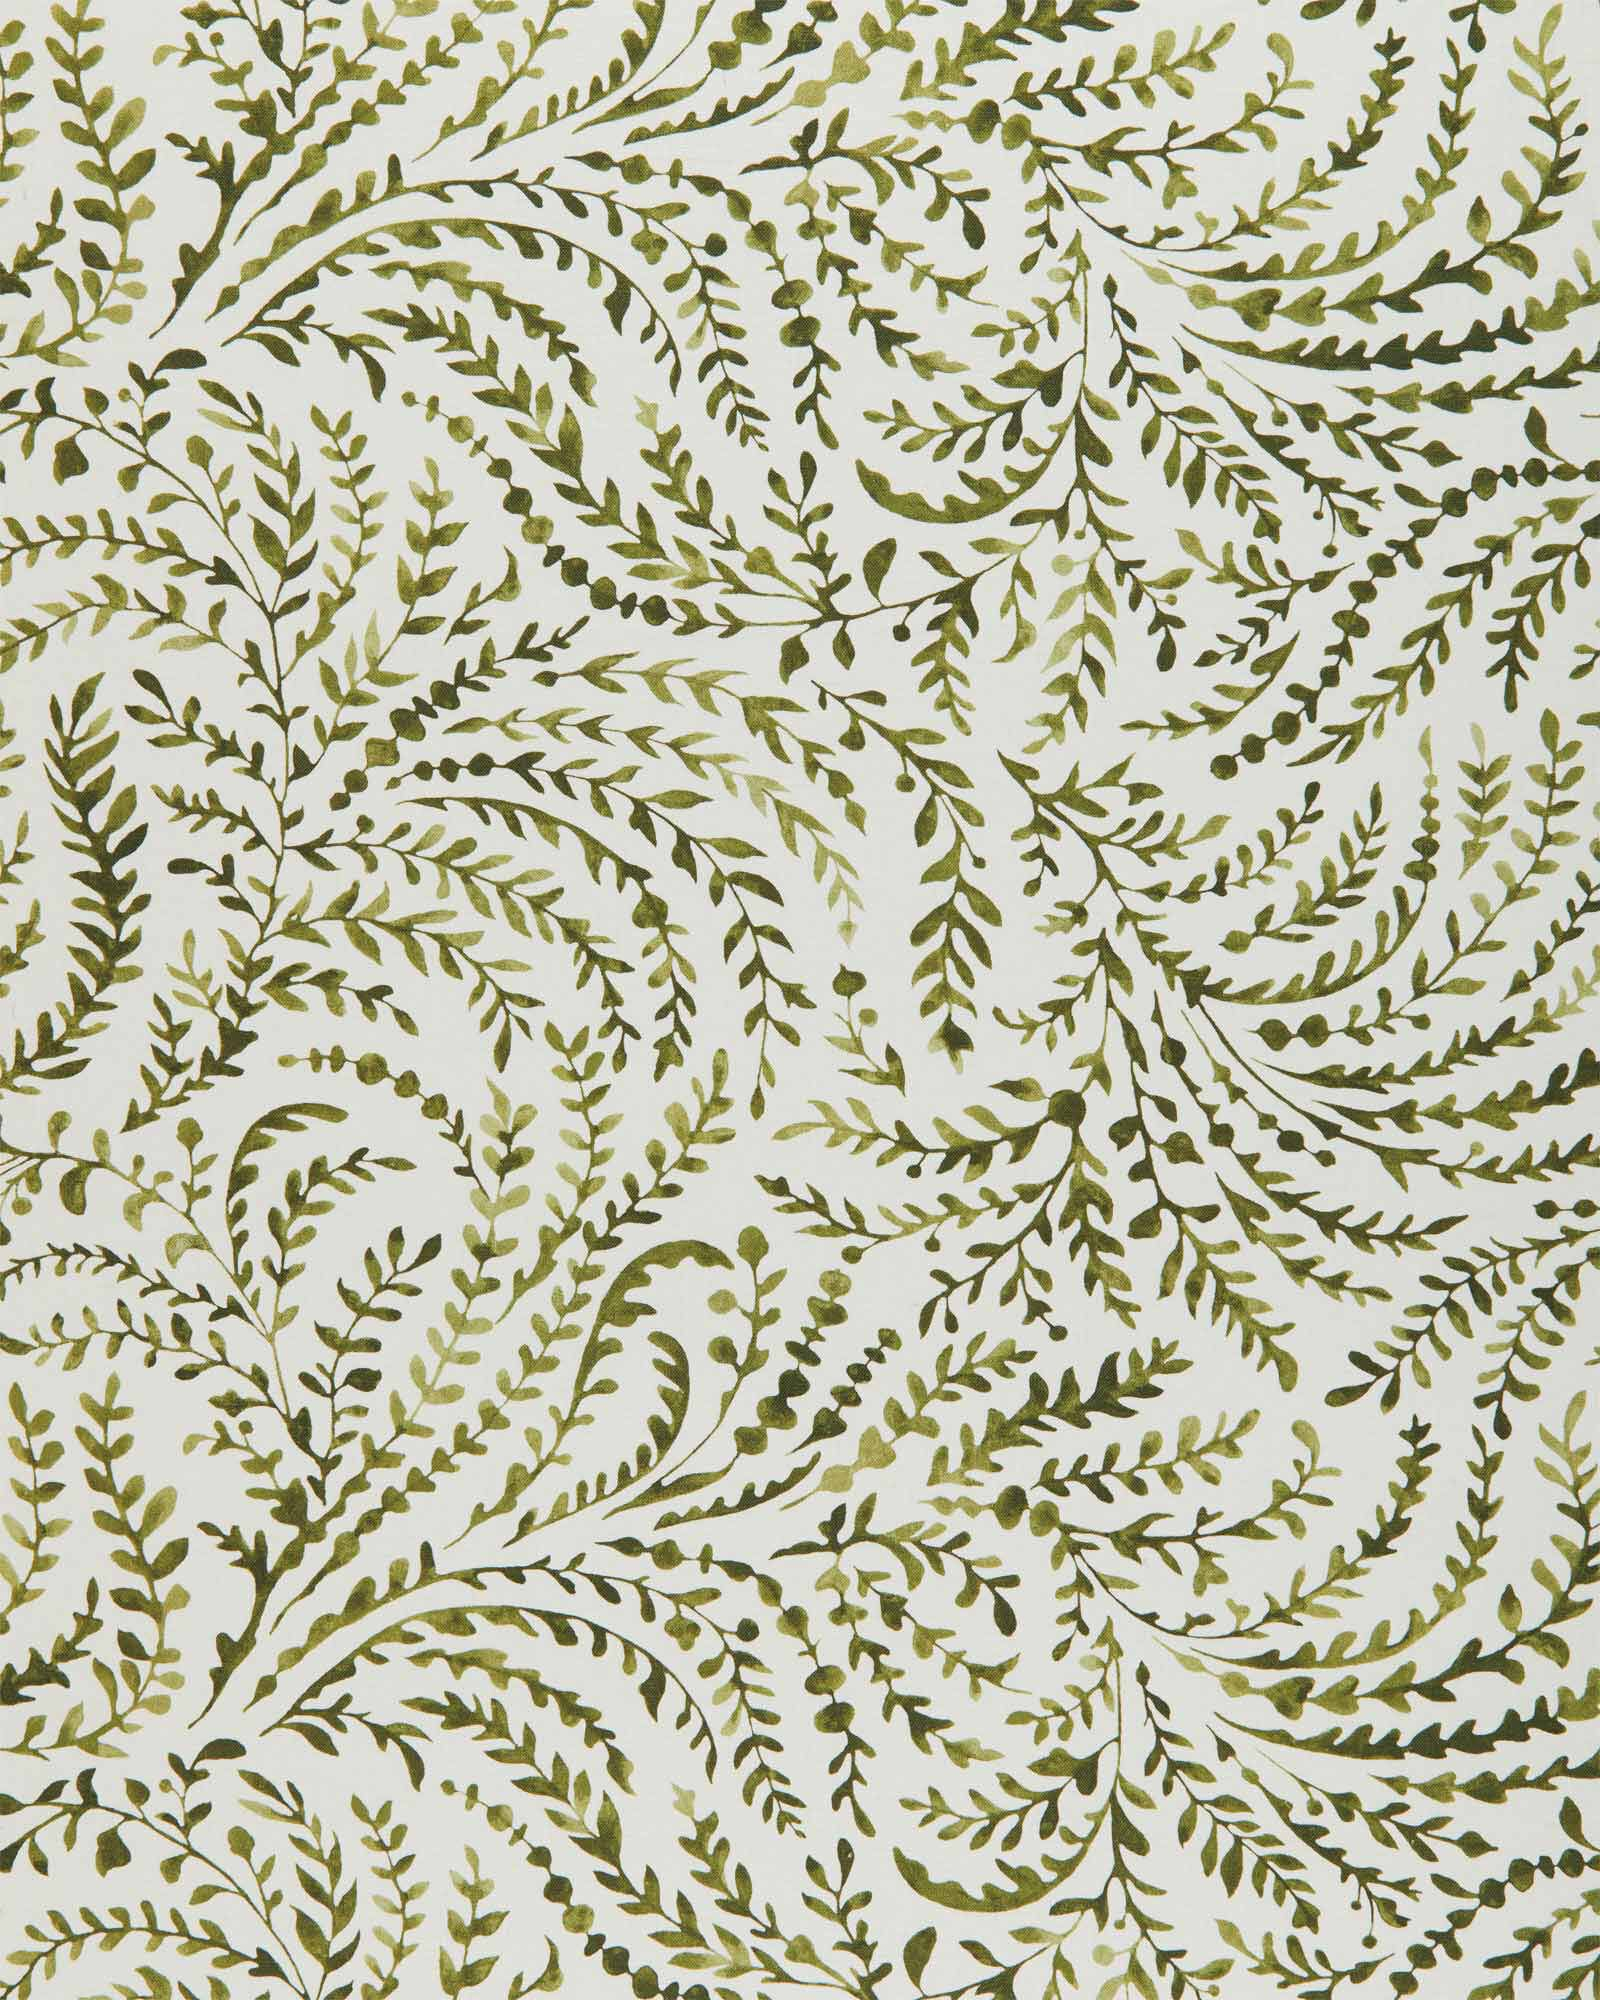 Fabric by the Yard - Priano Linen, Grove